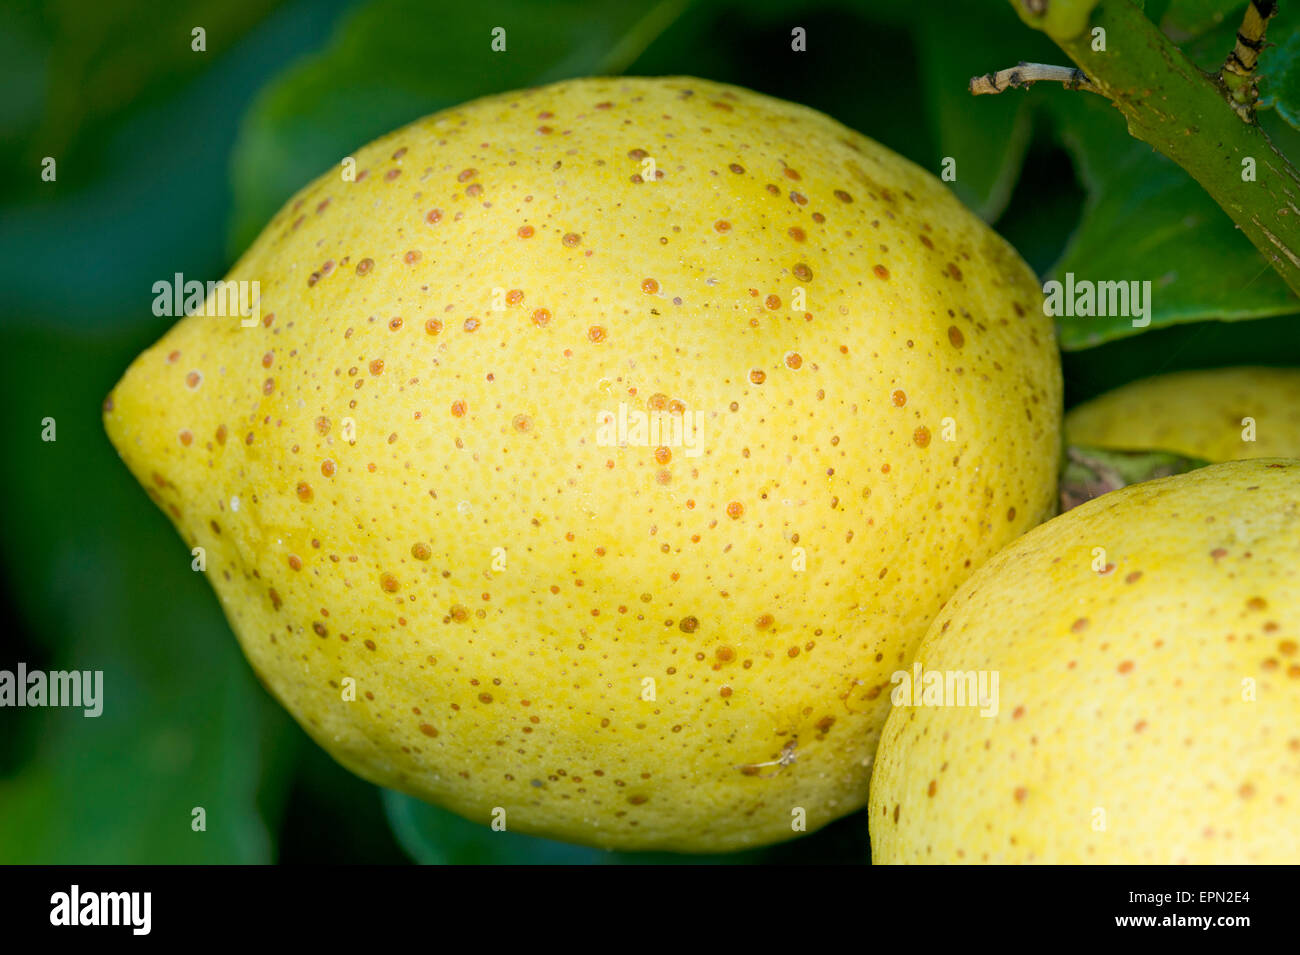 Californian red scale on lemon fruit - Stock Image